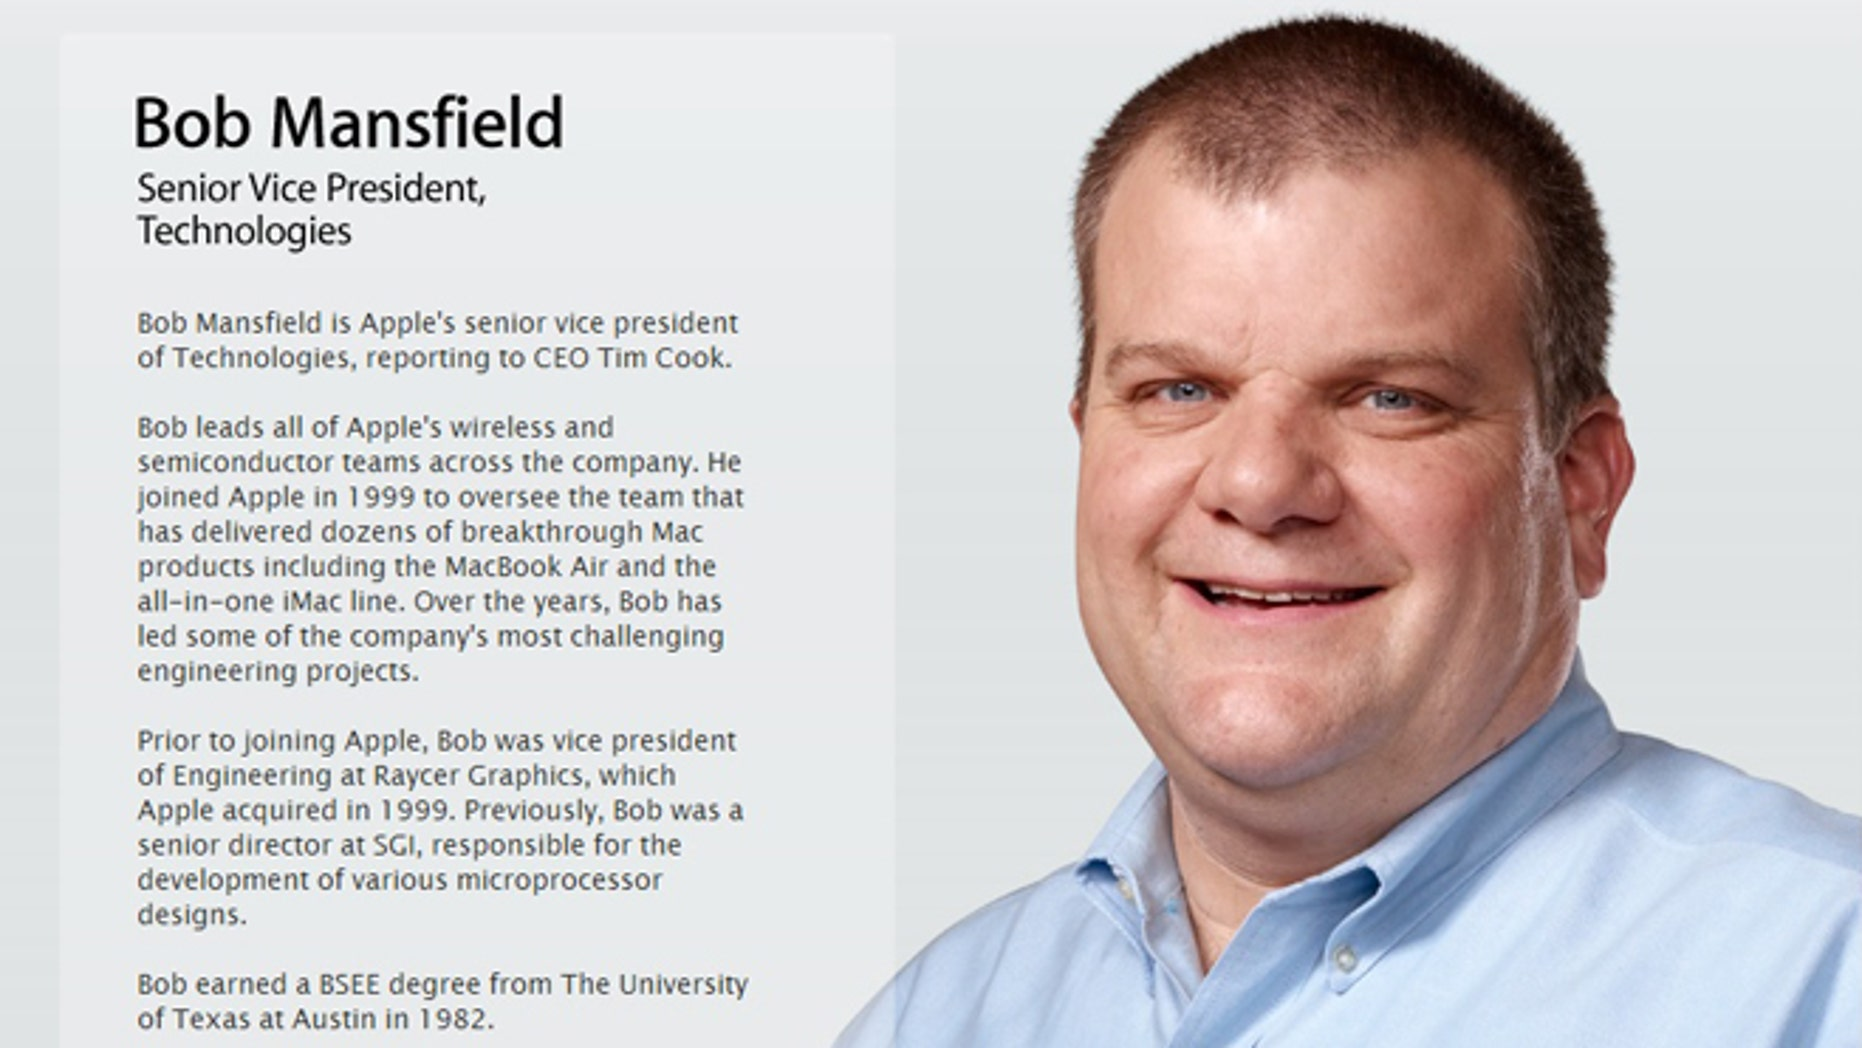 A screenshot of Apple's website offers a picture and description of Bob Mansfield, who was quietly removed from his senior position over the weekend.